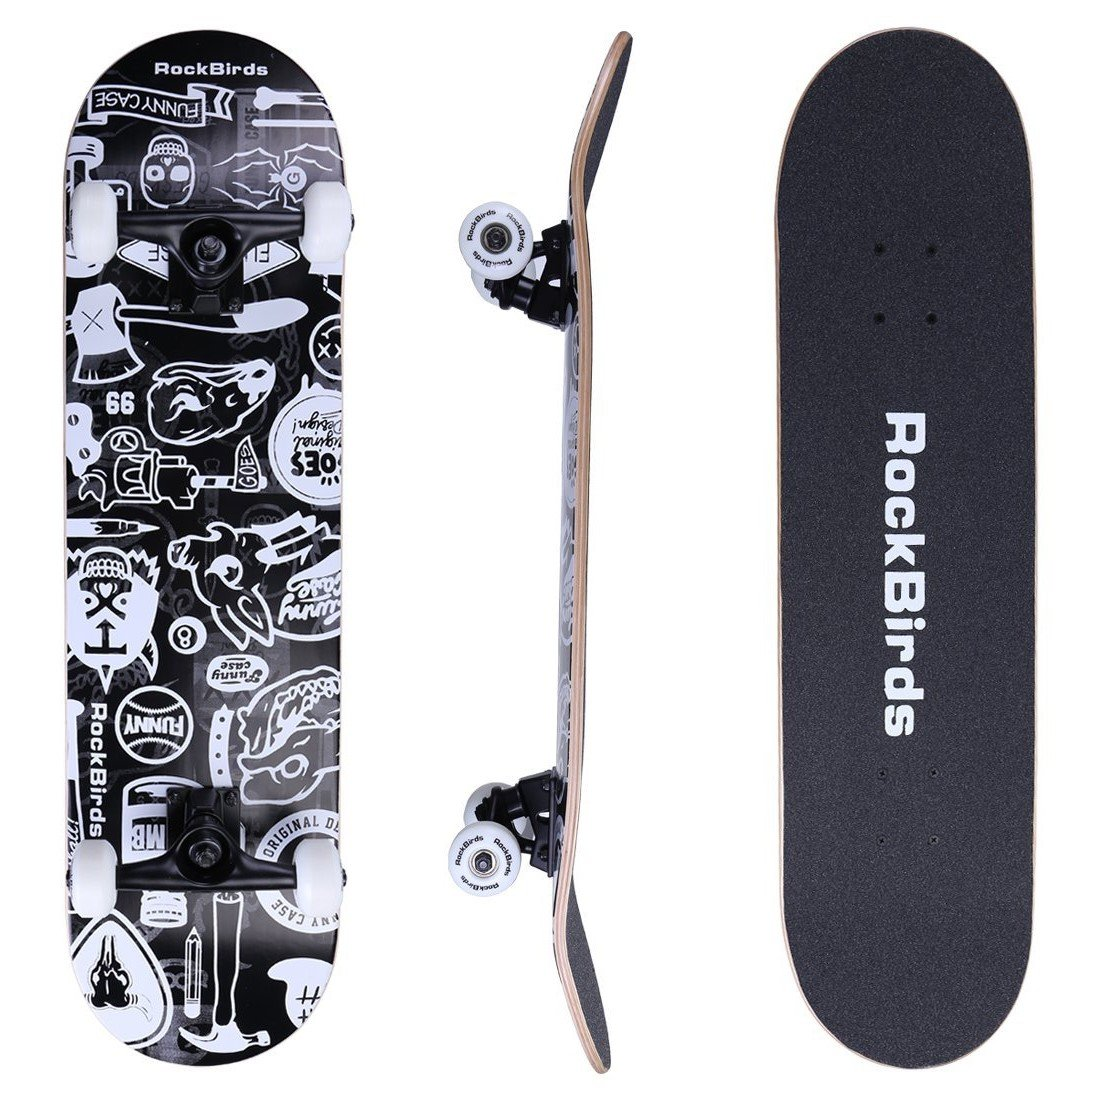 RockBirds Skateboards, 31'' Pro Complete Skateboard, 7 Layer Canadian Maple Skateboard Deck for Extreme Sports and Outdoors by RockBirds